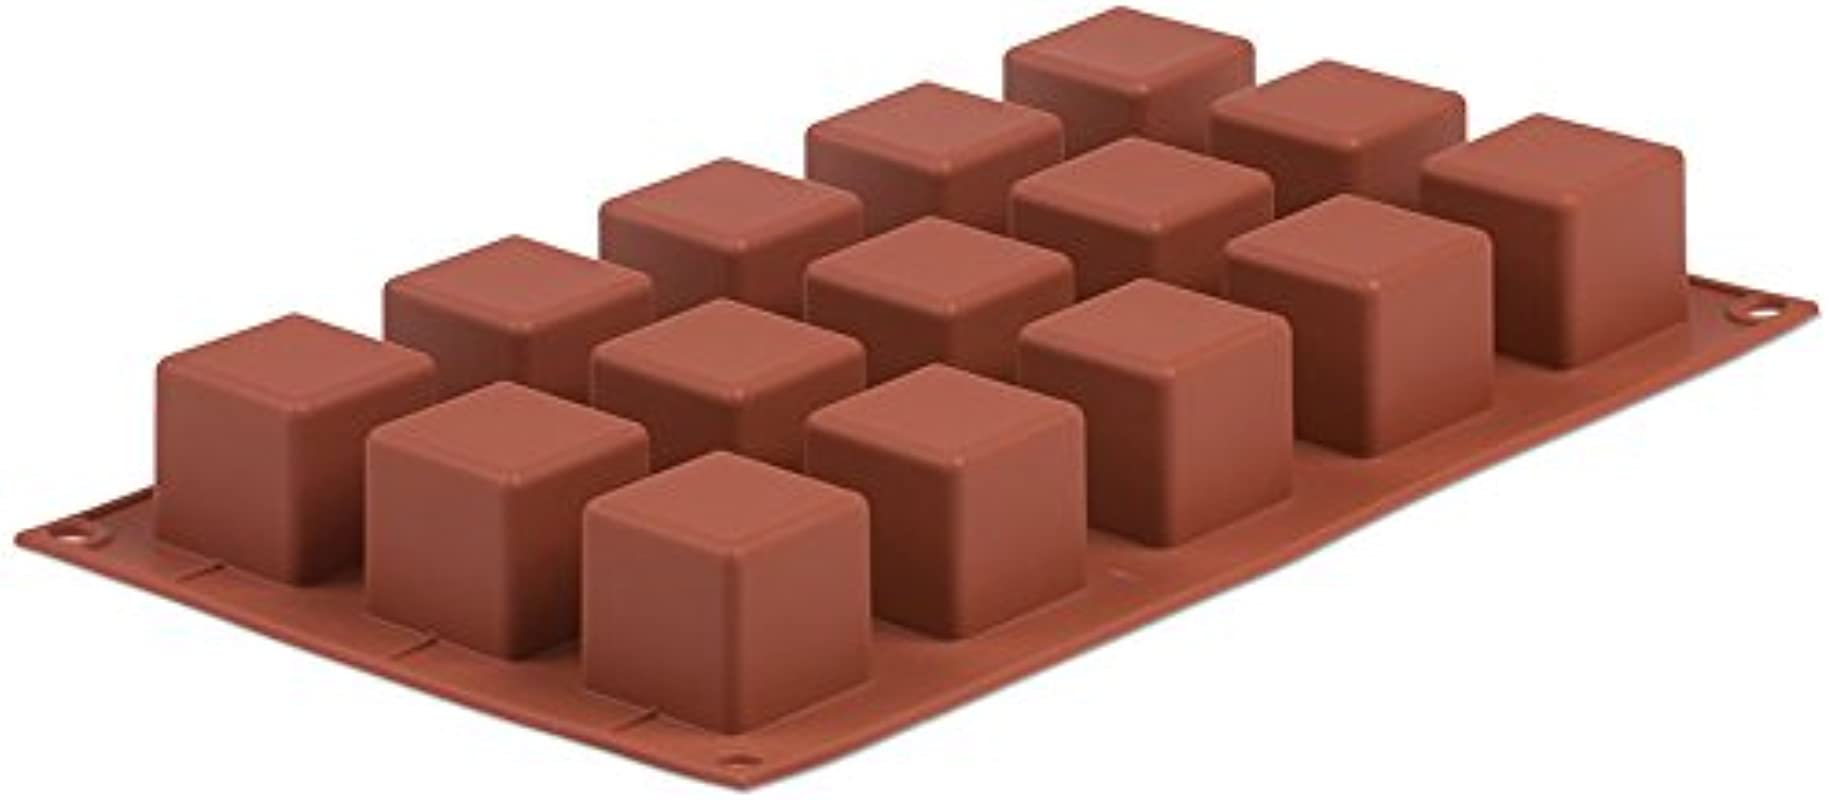 Pavoni Orange Nonstick Cubes 15 Molds